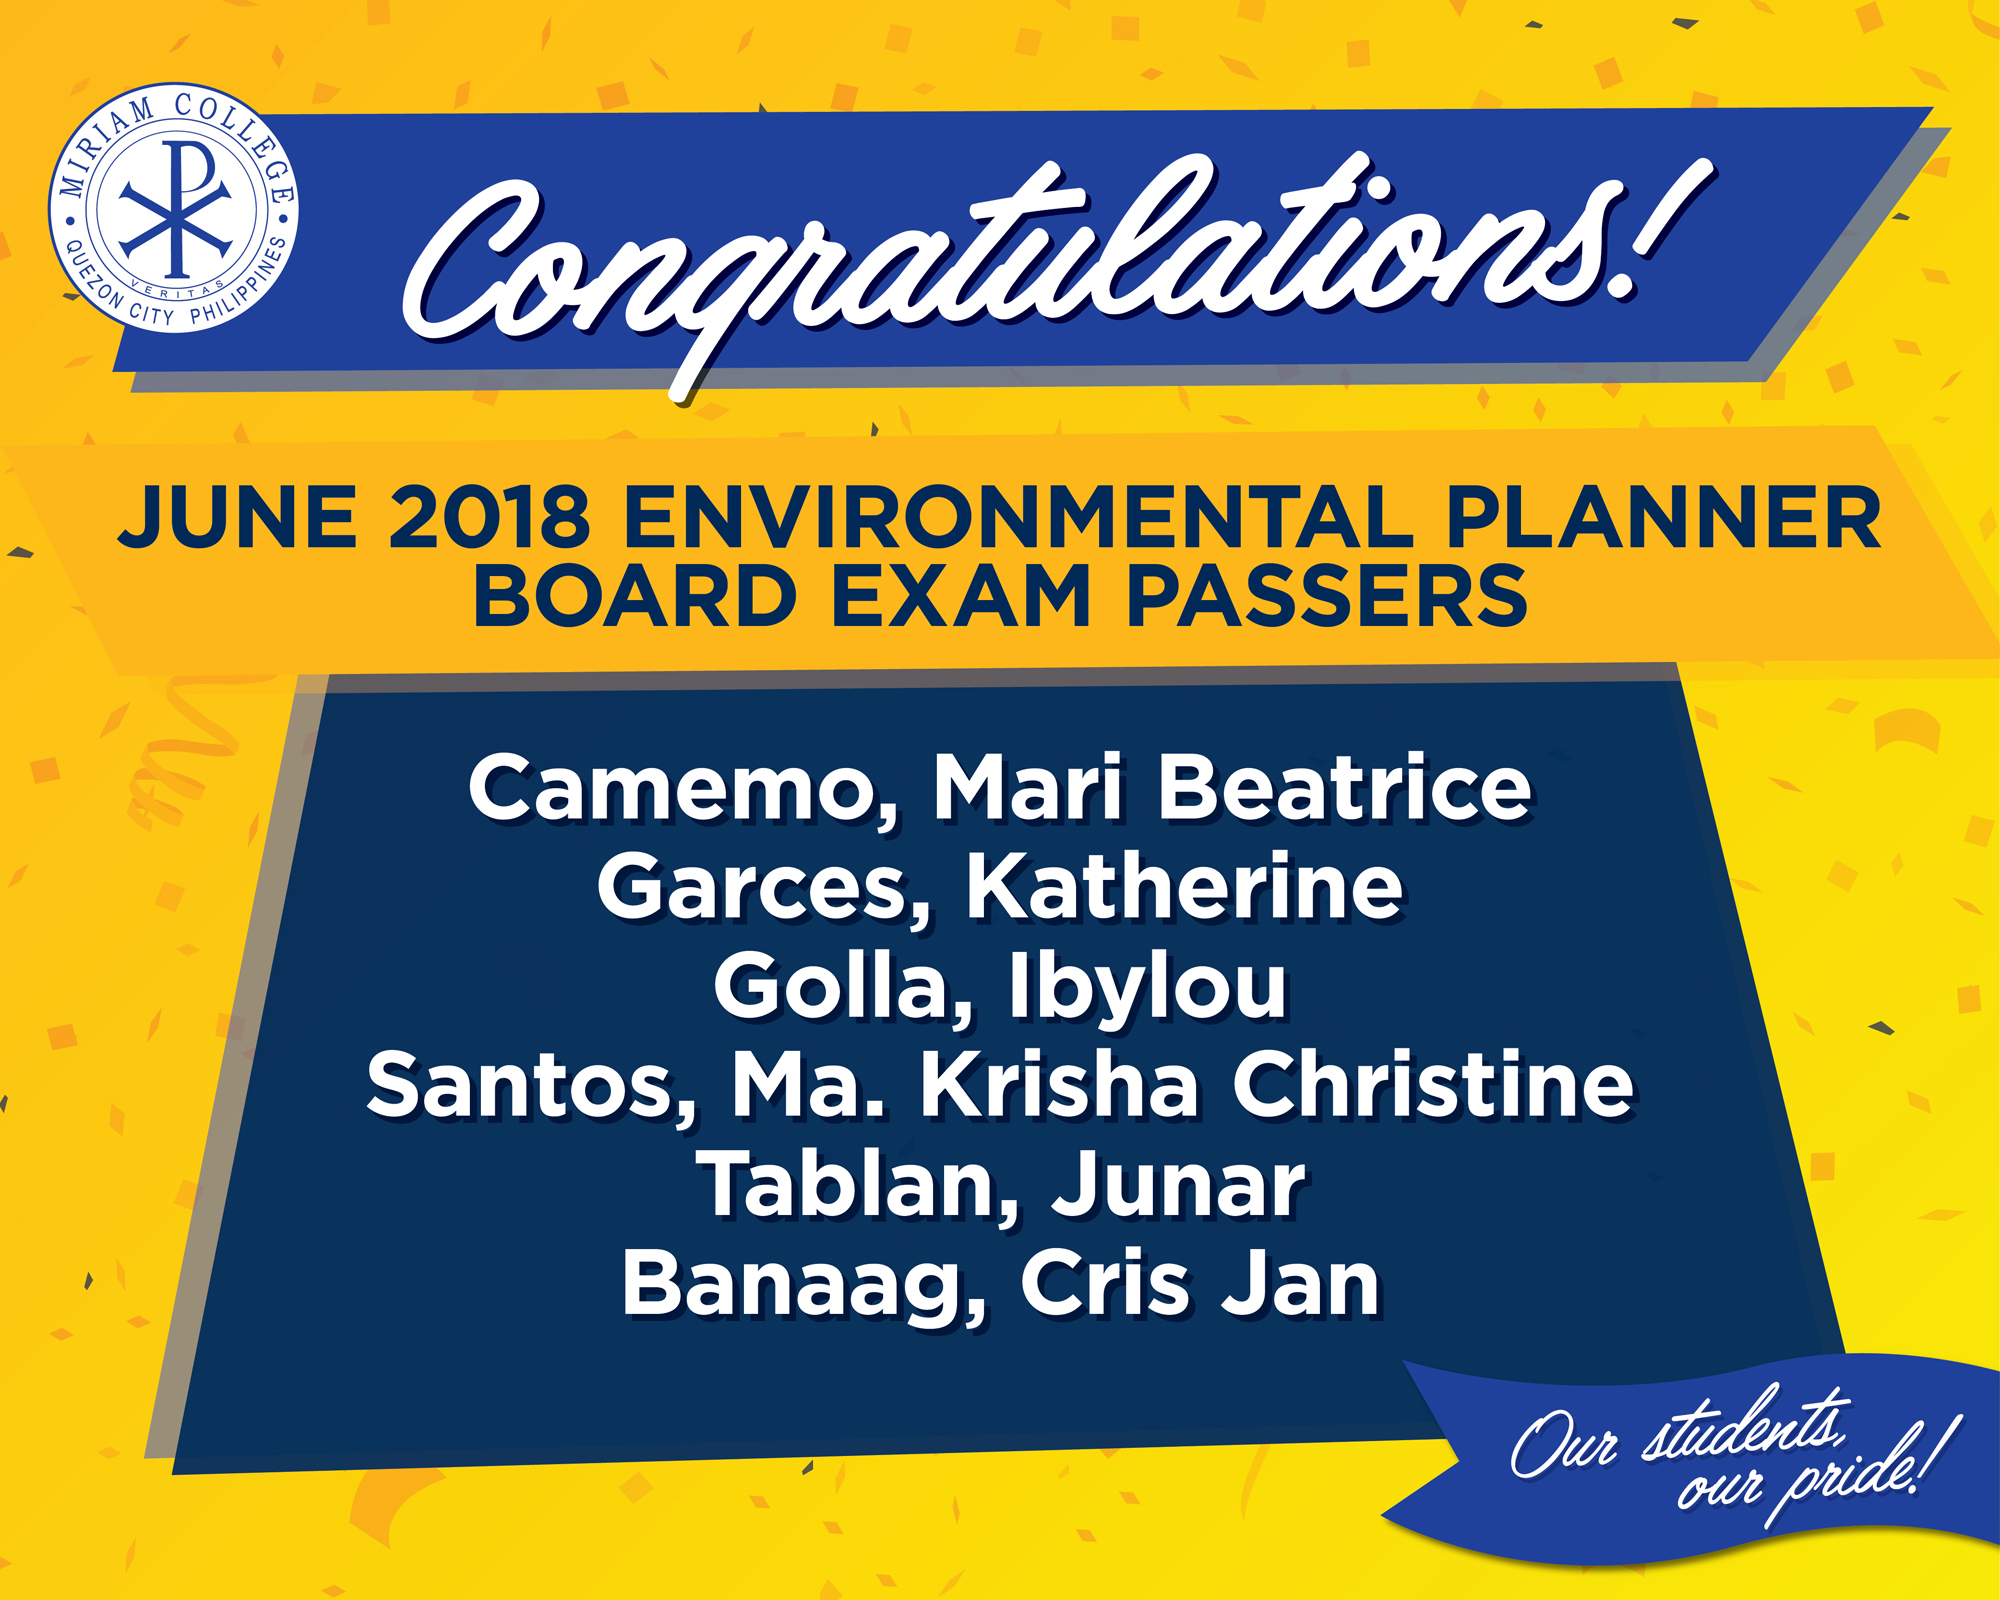 Congratulations to our new Environmental Planners!